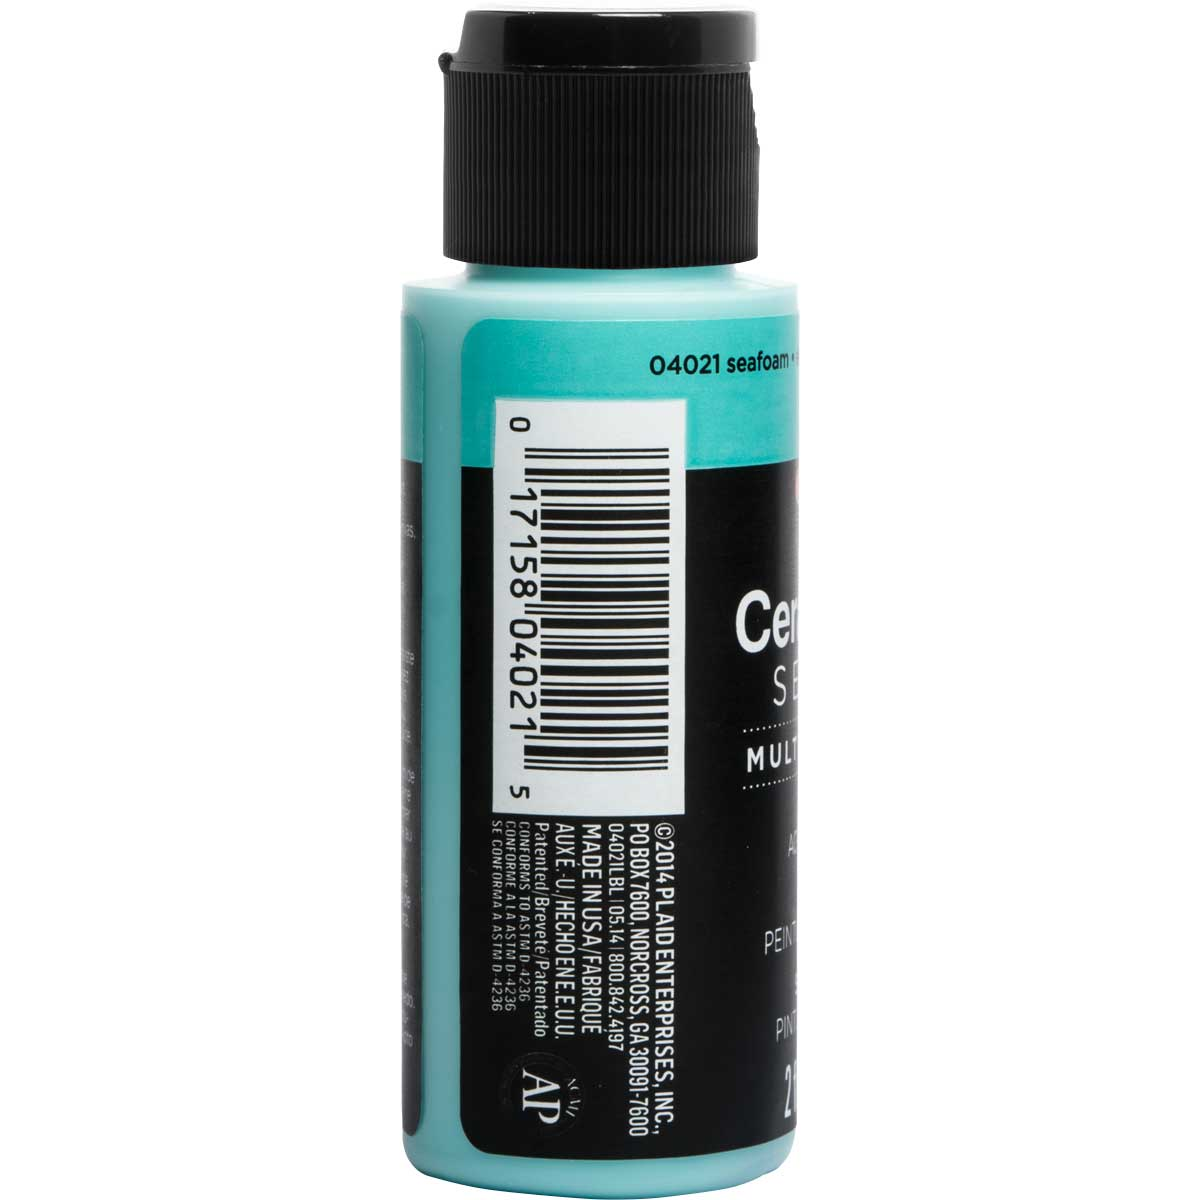 Delta Ceramcoat ® Select Multi-Surface Acrylic Paint - Satin - Seafoam, 2 oz. - 04021